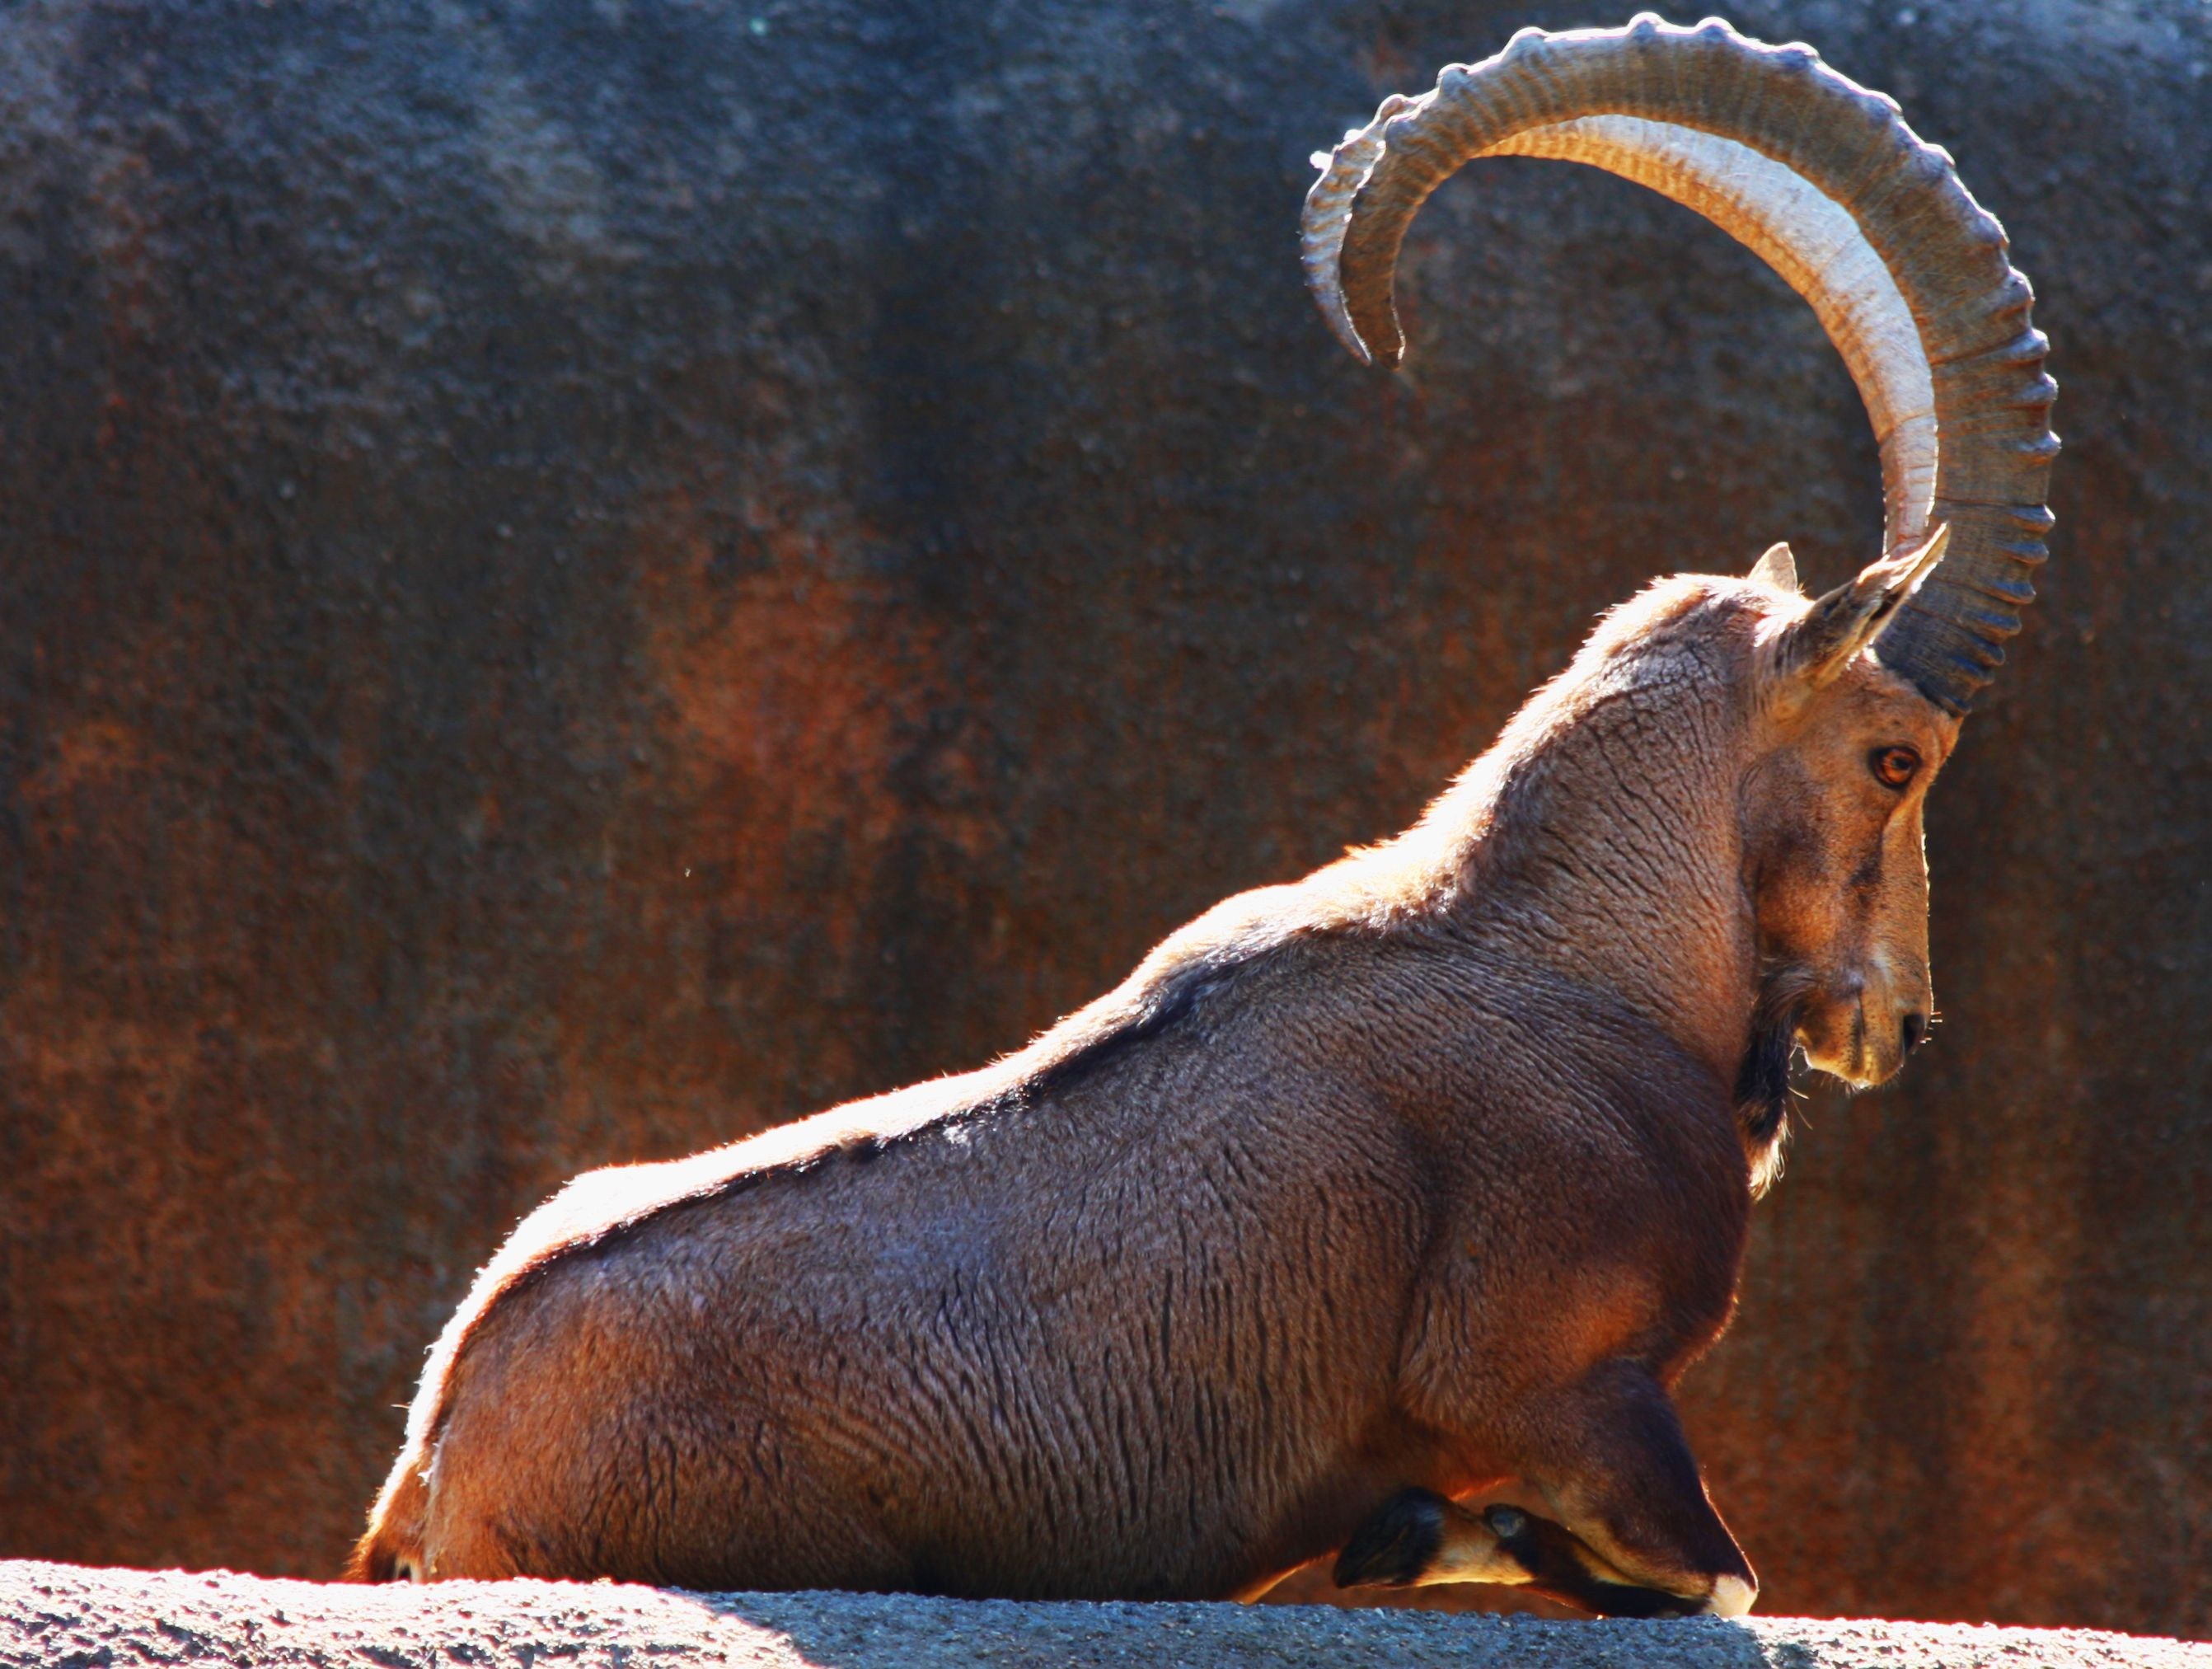 The Nubian ibex, Jordan a large mountain goat which